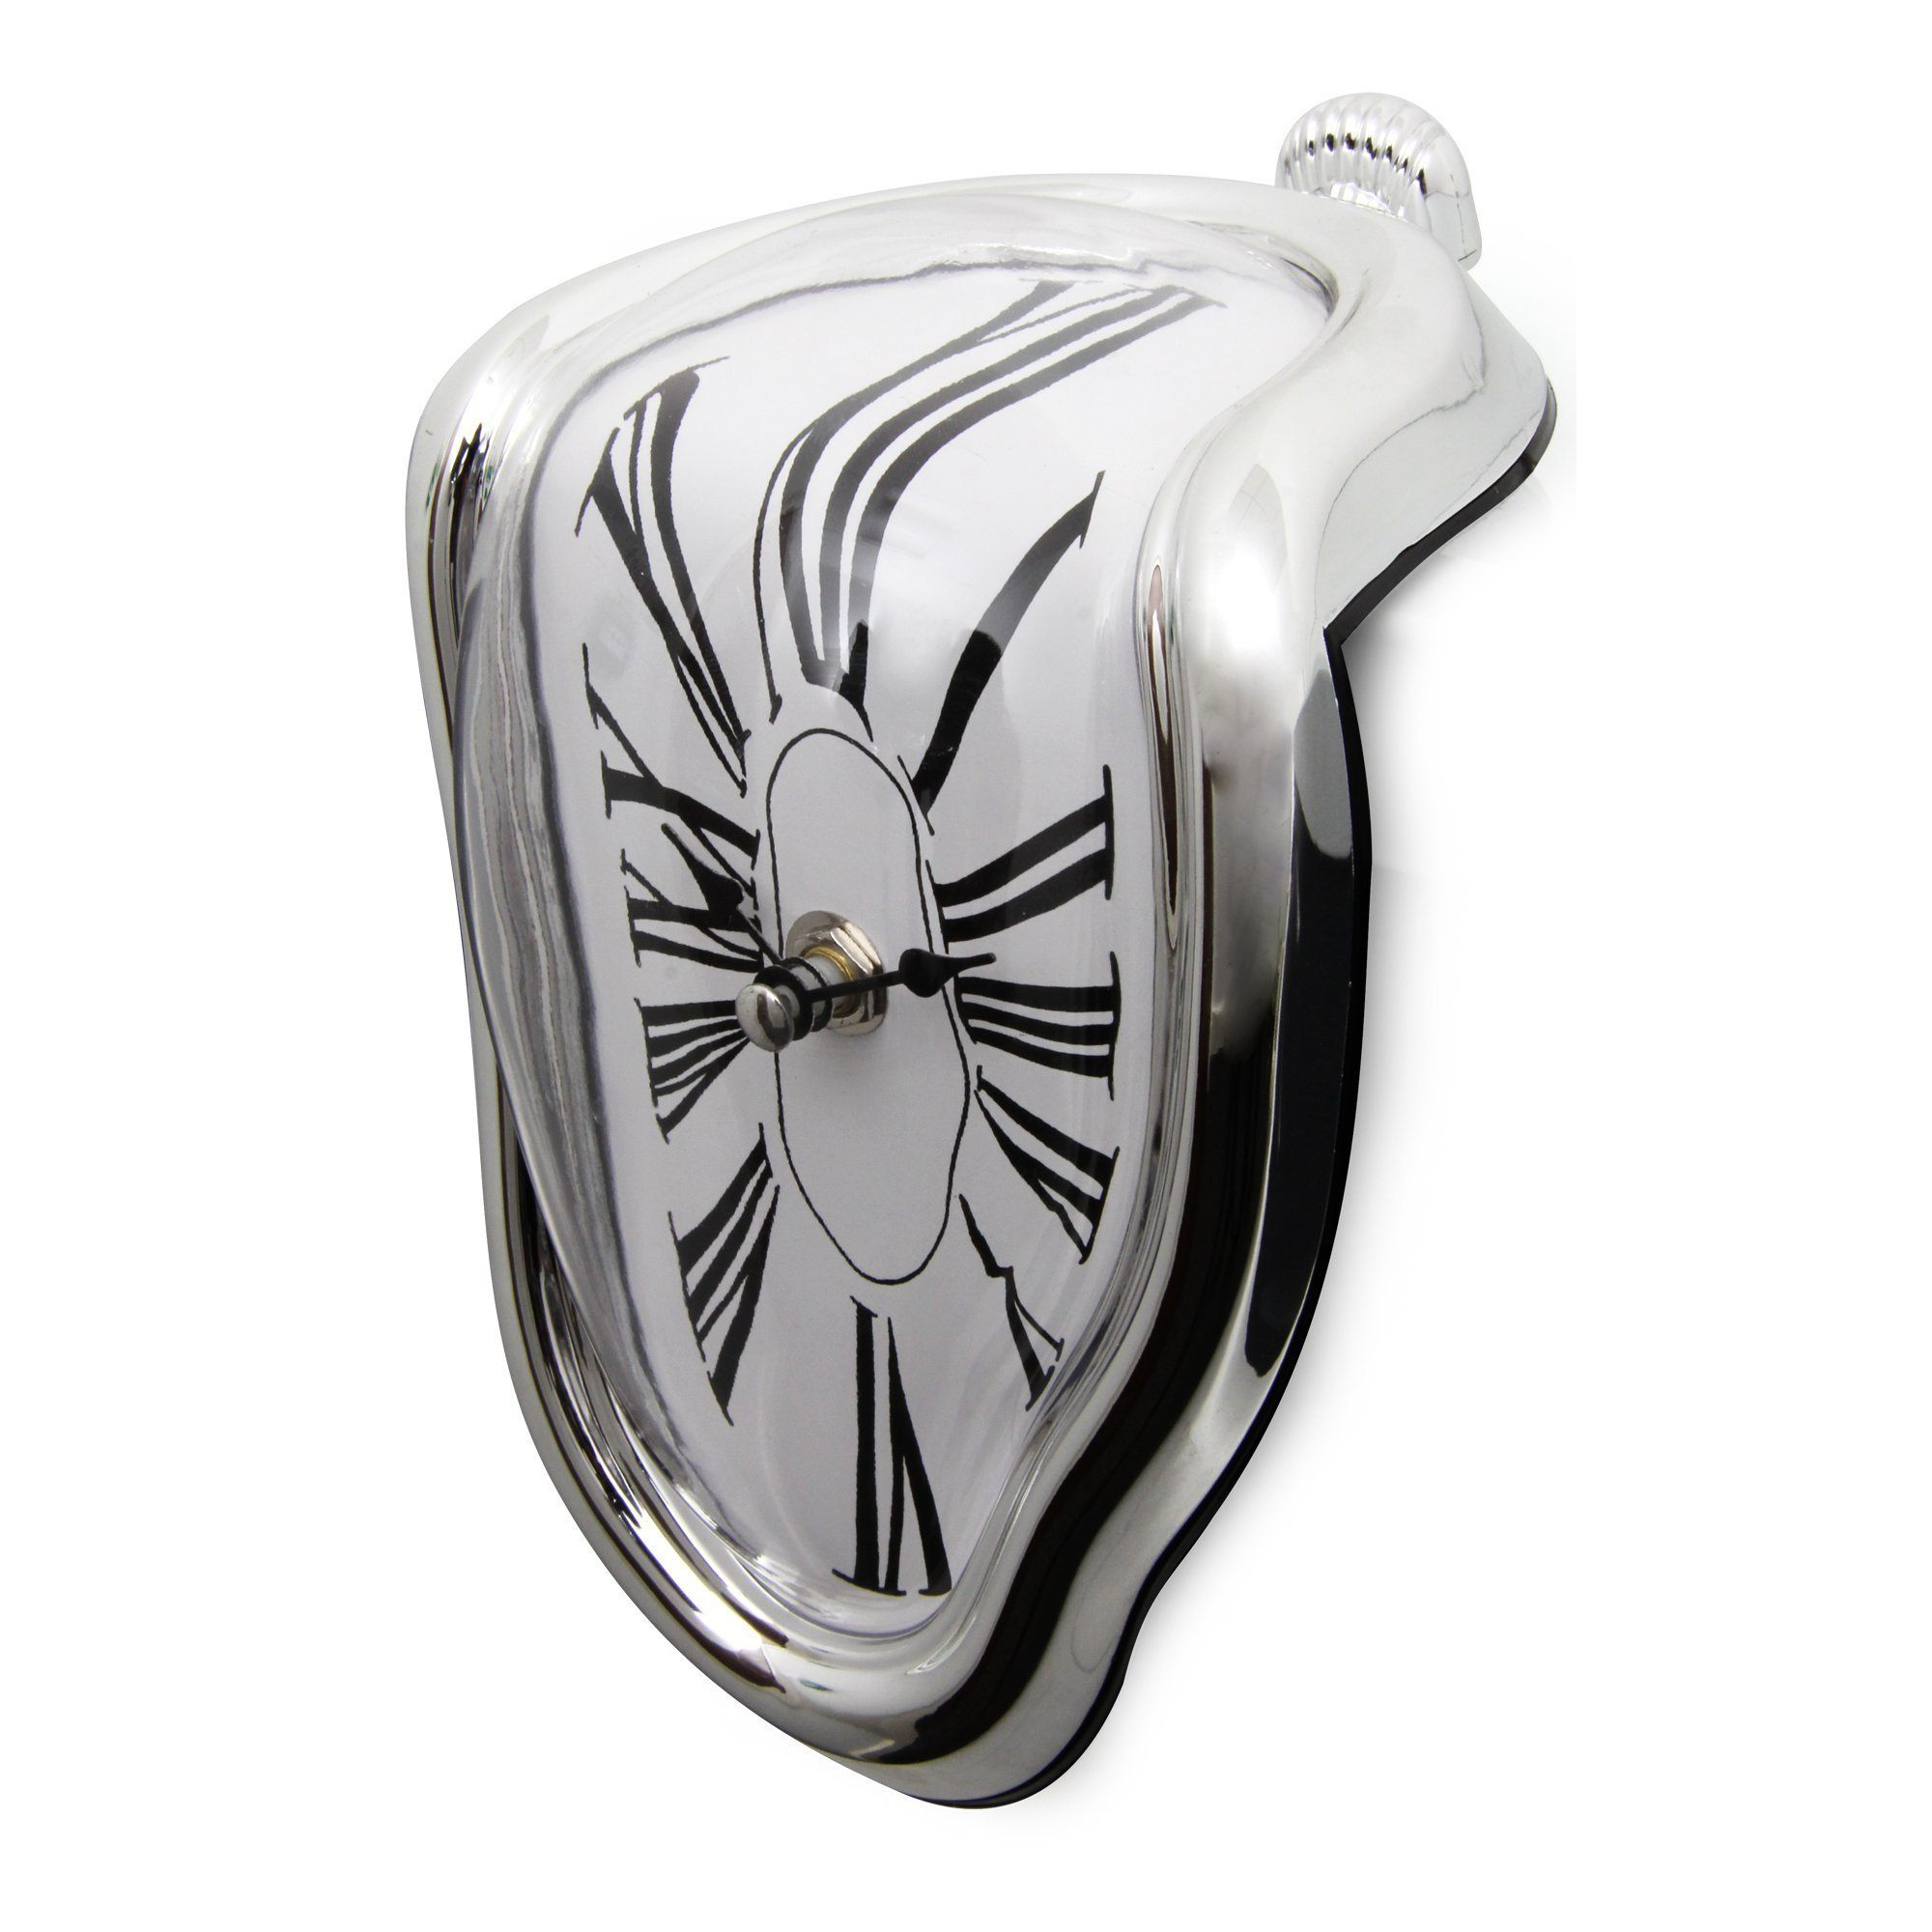 Melting Clock Wall Clocks Loom Rack